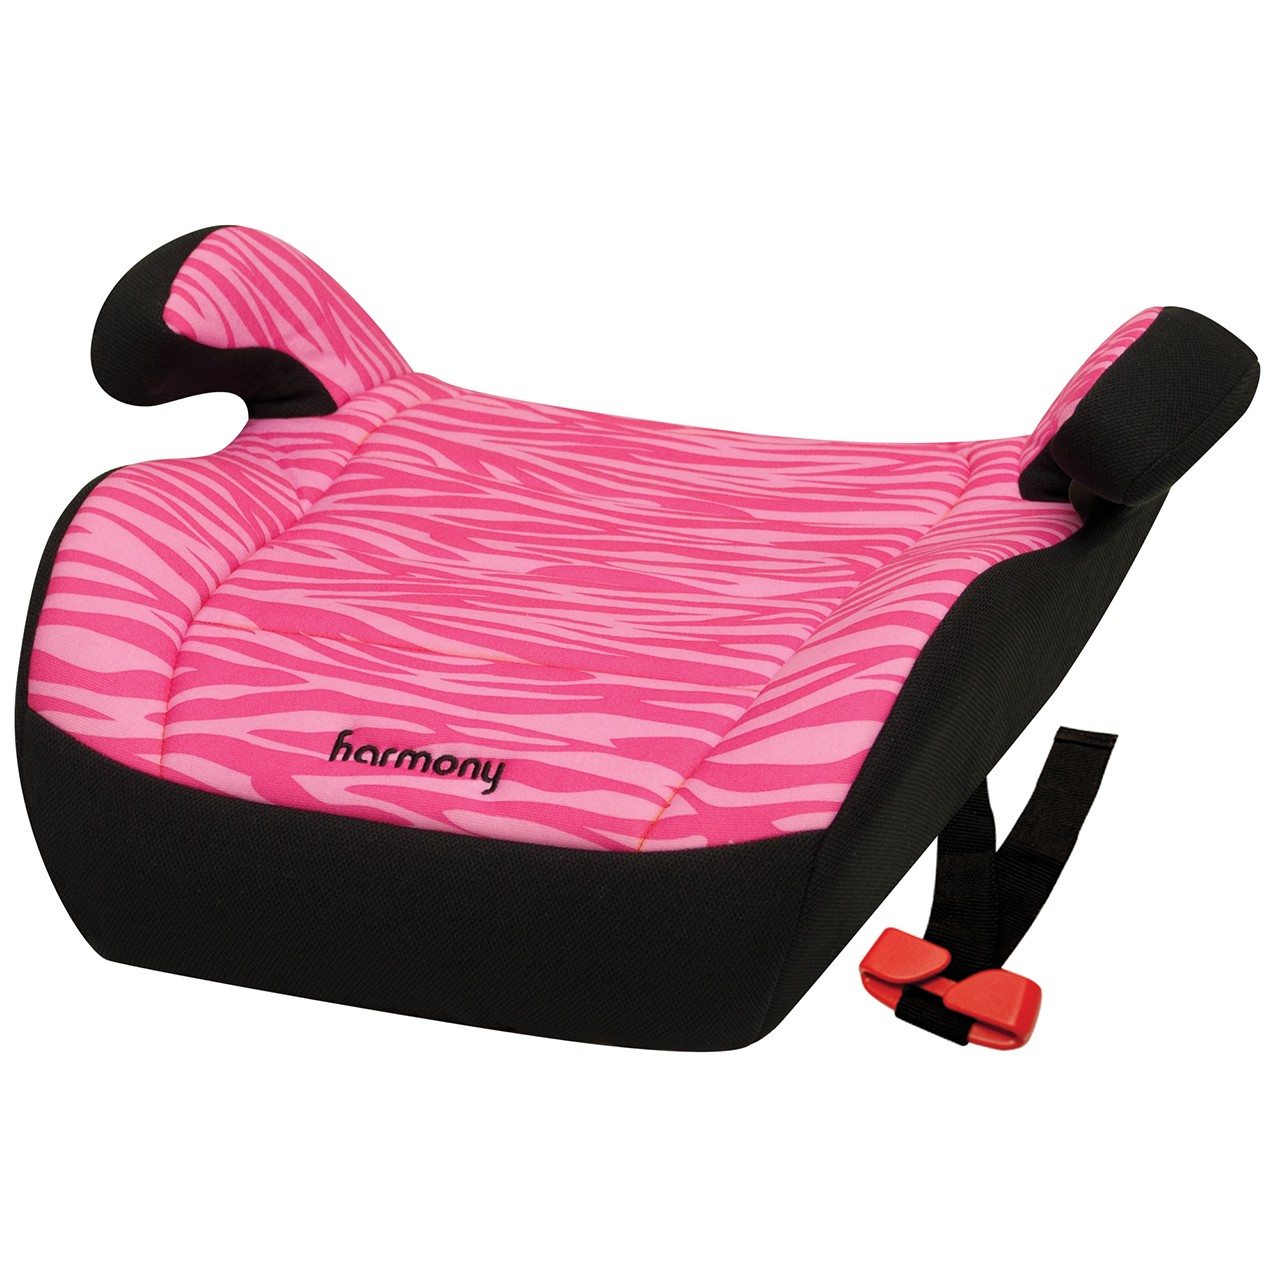 youth booster car seat pink zebra